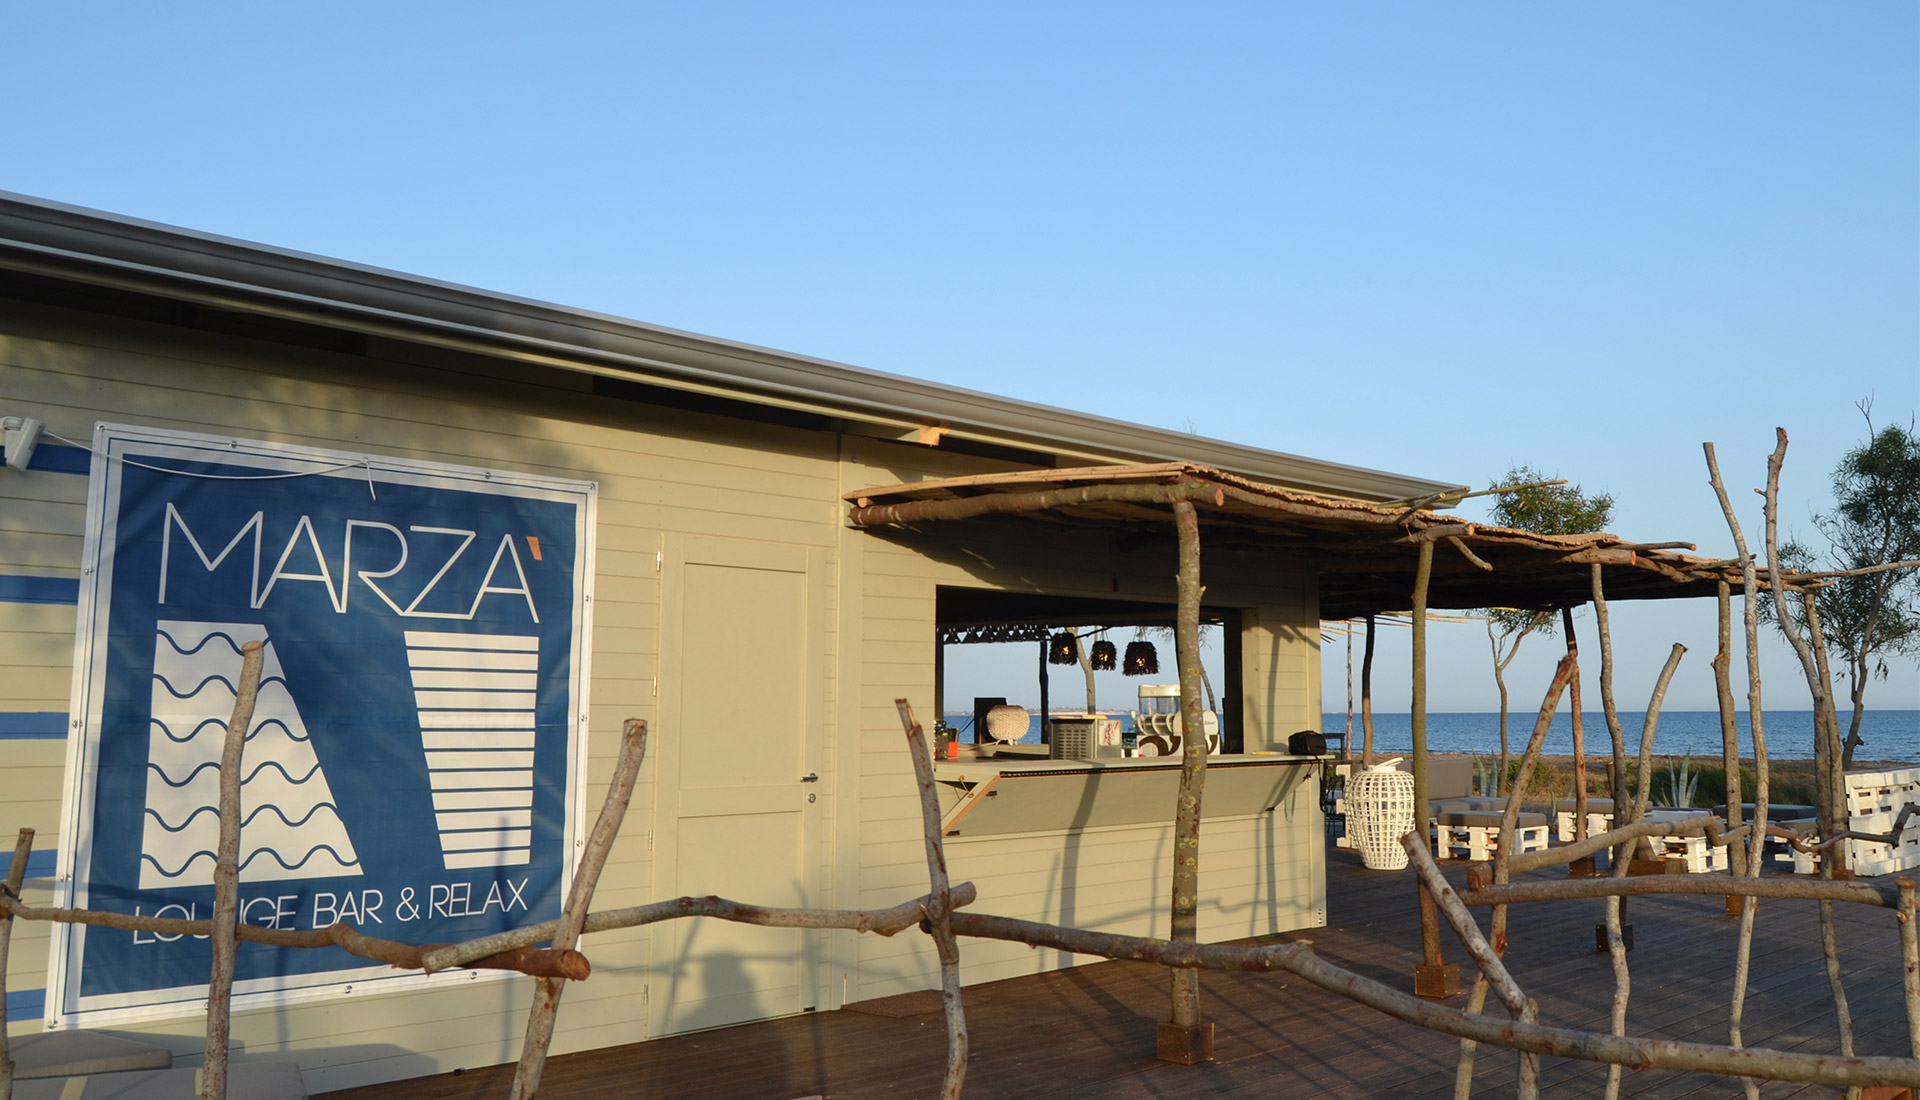 MARZA' - Lounge Bar & Relax